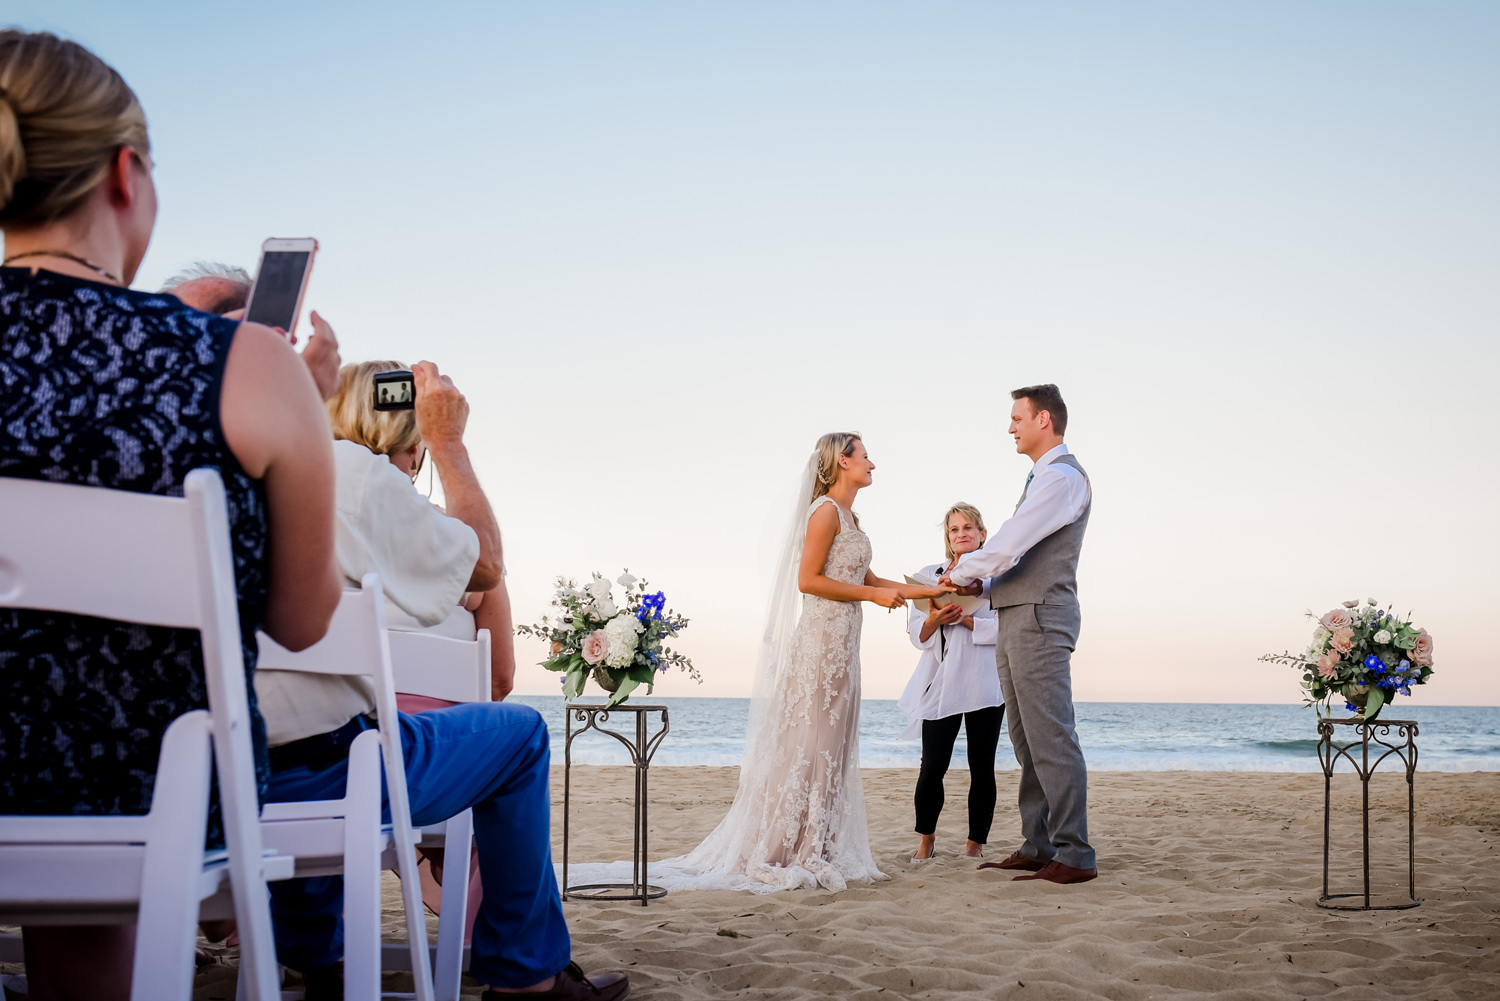 sunset-beach-wedding-ceremony-virginia-beach-wedding-photographer-melissa-bliss-photography-sandbridge-VA.jpg